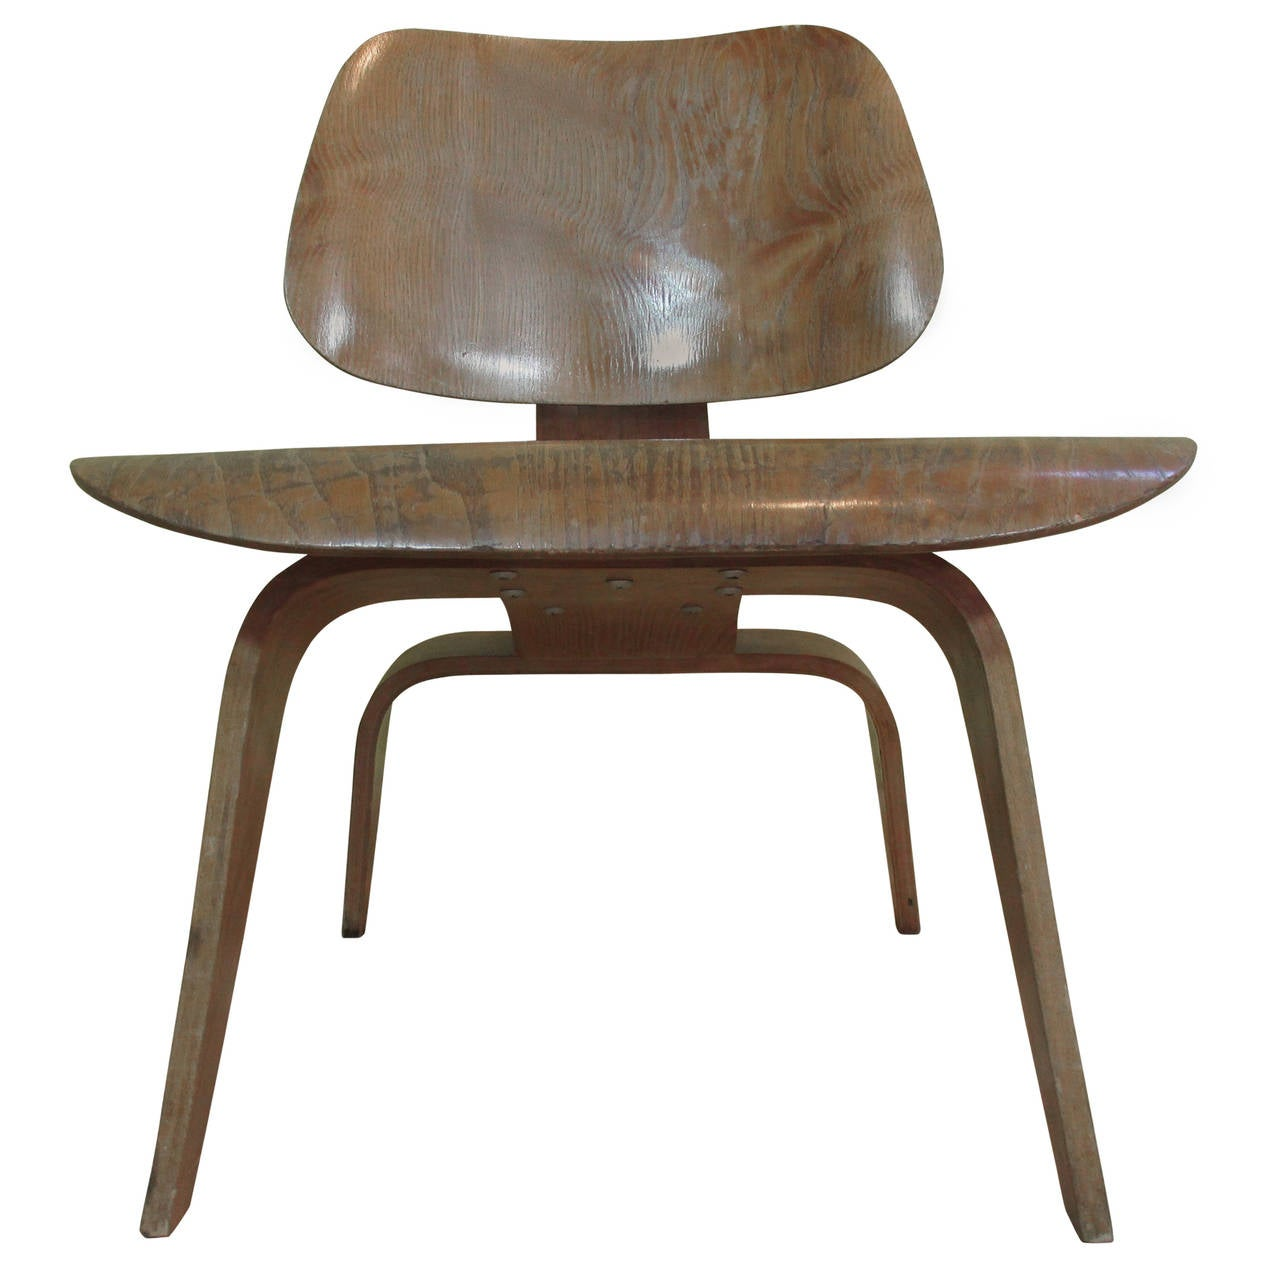 Amazing Eames LCW Molded Plywood Lounge Chair, Evans 1